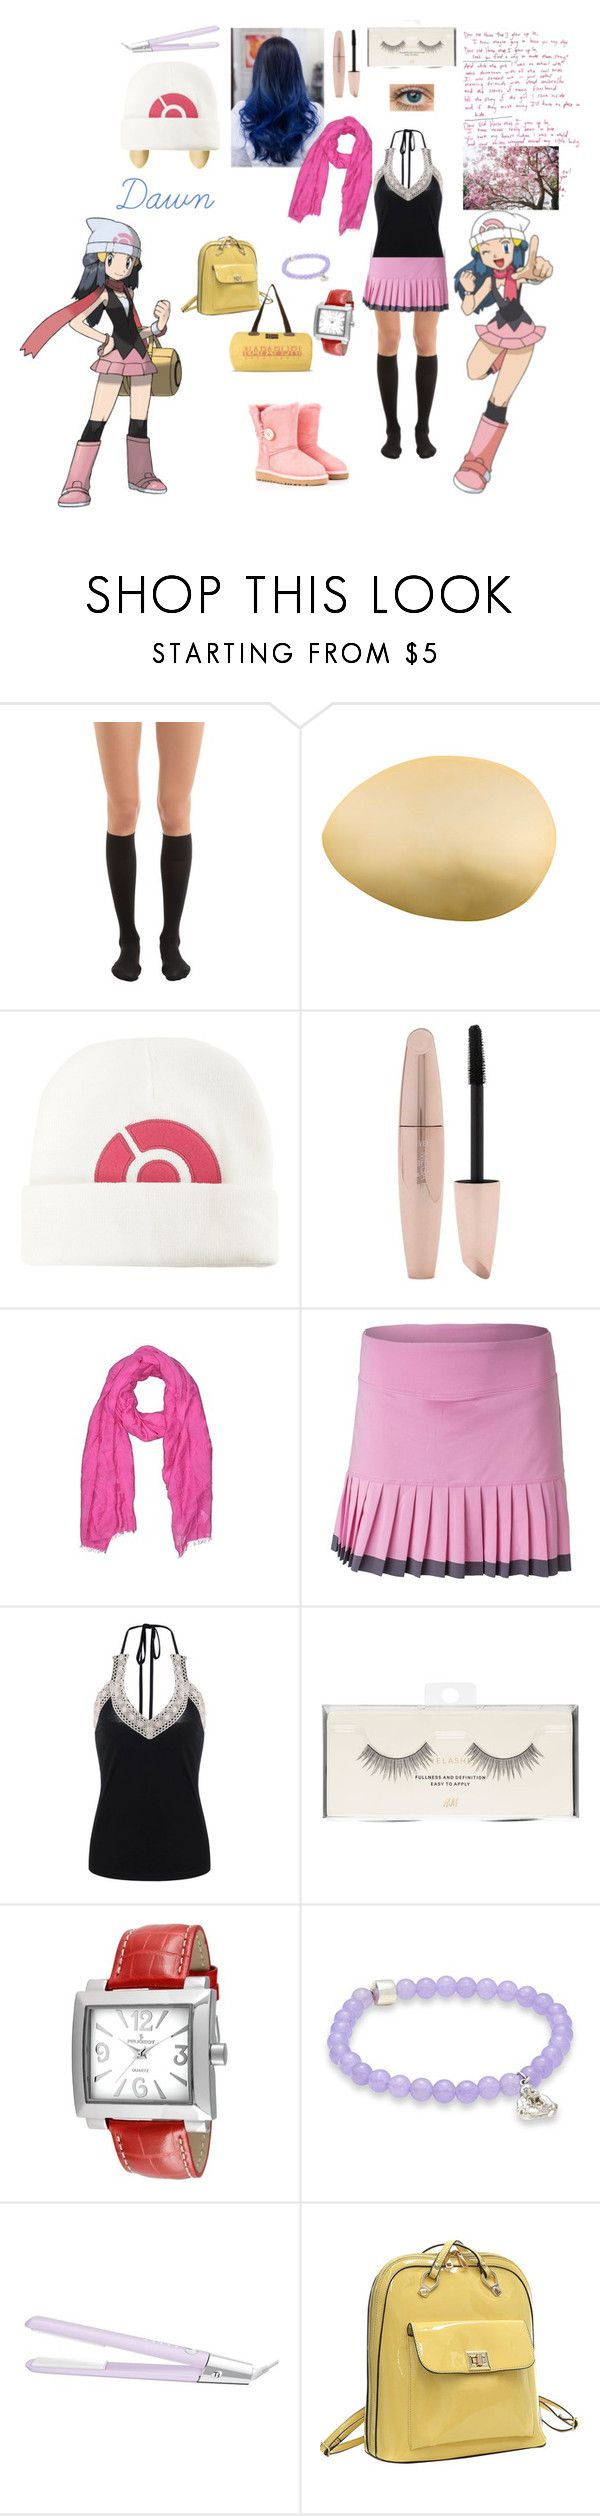 """""""Dawn casual cosplay #1